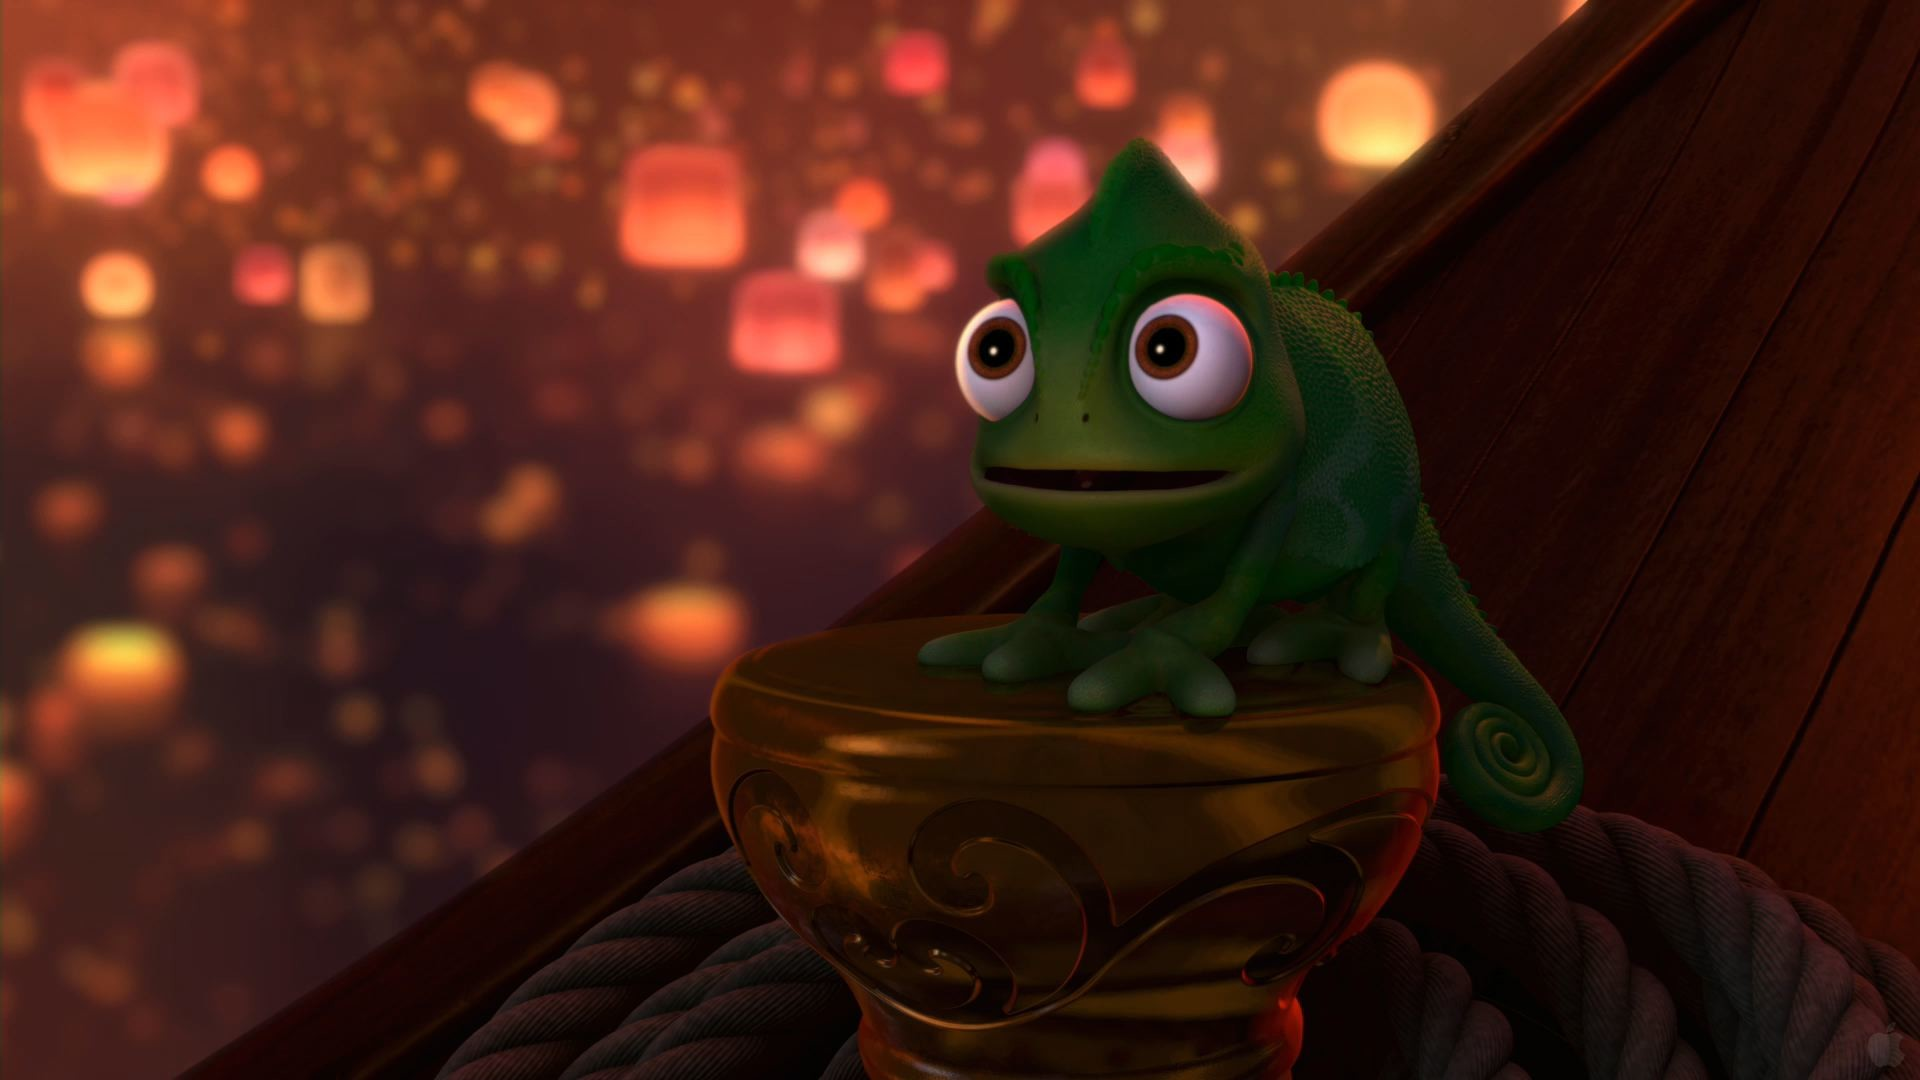 Pascal Tangled | Pascal in Disney's Tangled wallpaper – Click picture for  high .